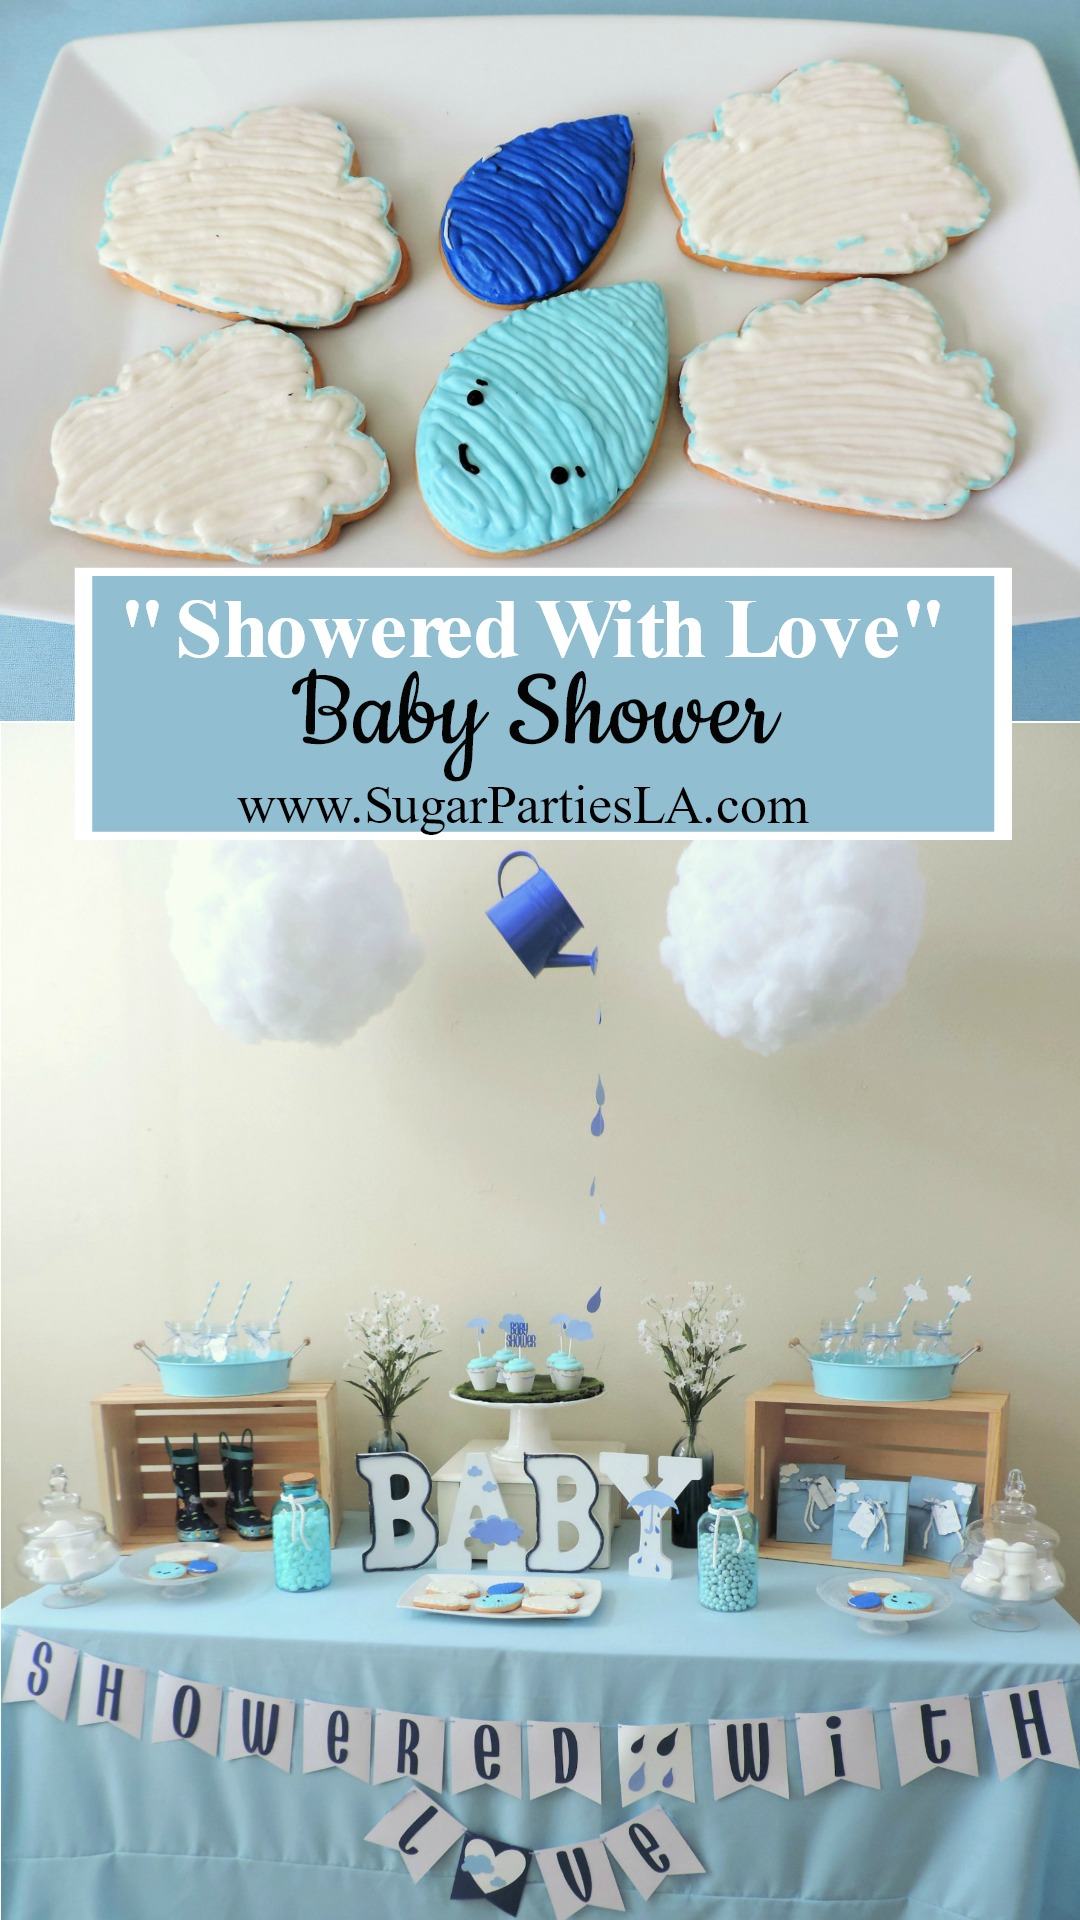 Showered With Love-April Showers Baby Shower-April Showers Bring May Flowers-Showered With Love Baby Shower-Spring Baby Shower-www.SugarPartiesLA.com.jpg